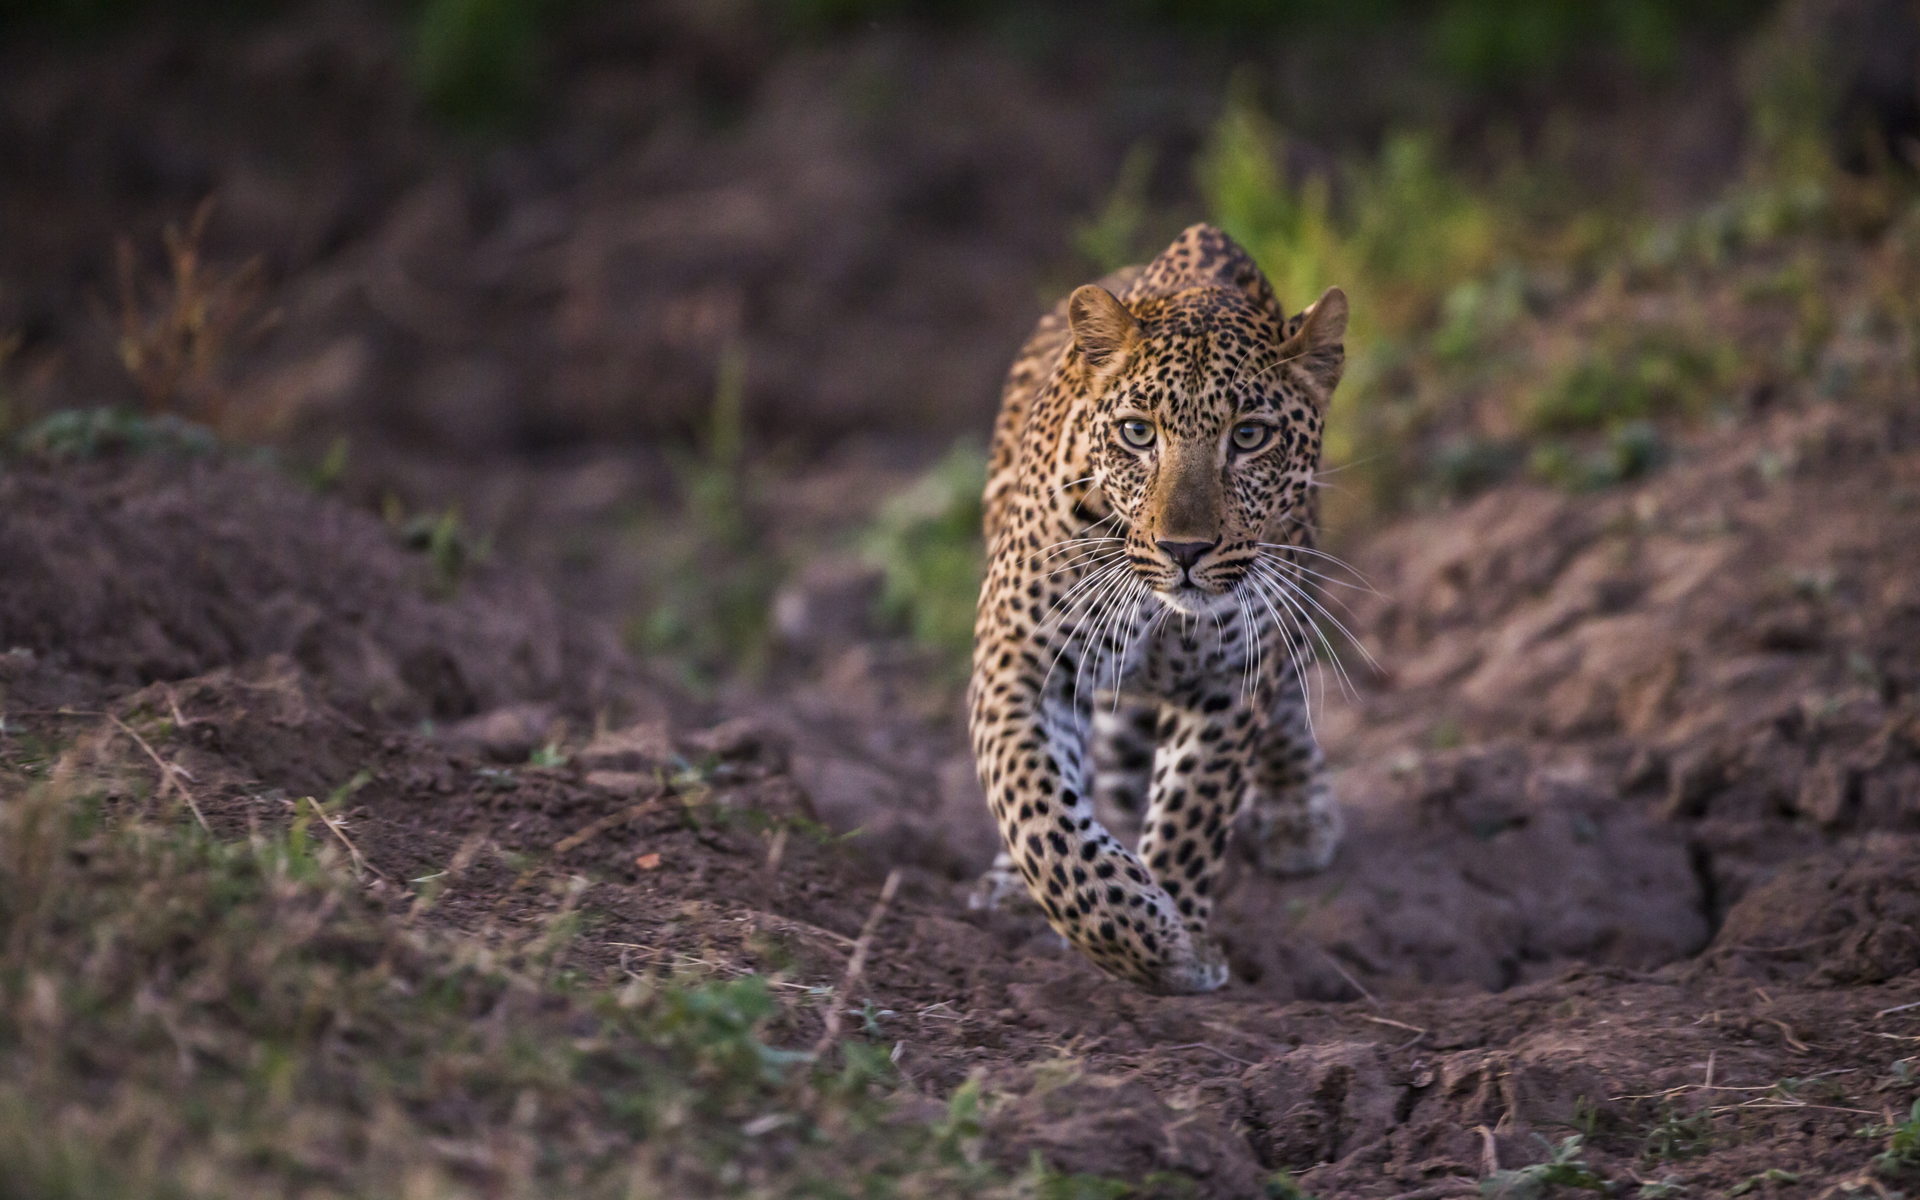 The gullies across the plains have been carved out by hippopotamuses moving from the river to the grasslands. The gullies provide leopards with the ultimate ambush point.